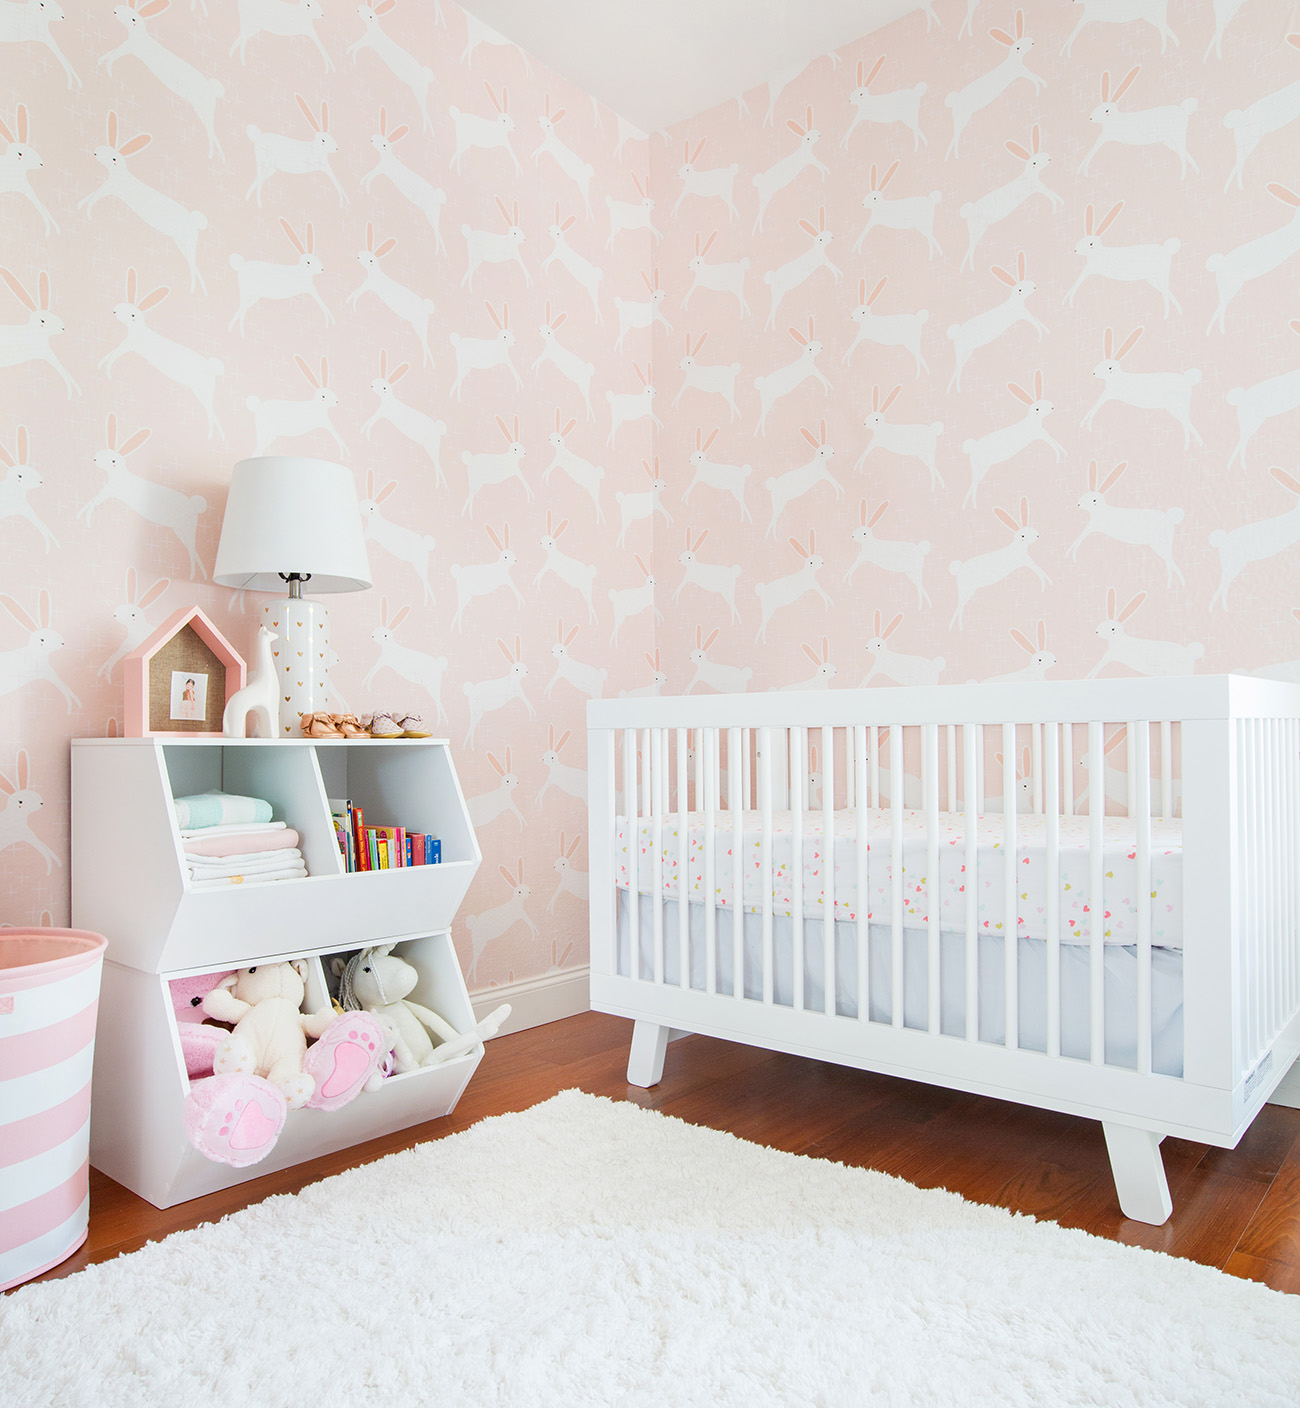 A Pink Bunny Nursery with Target & Emily Henderson | Green ...